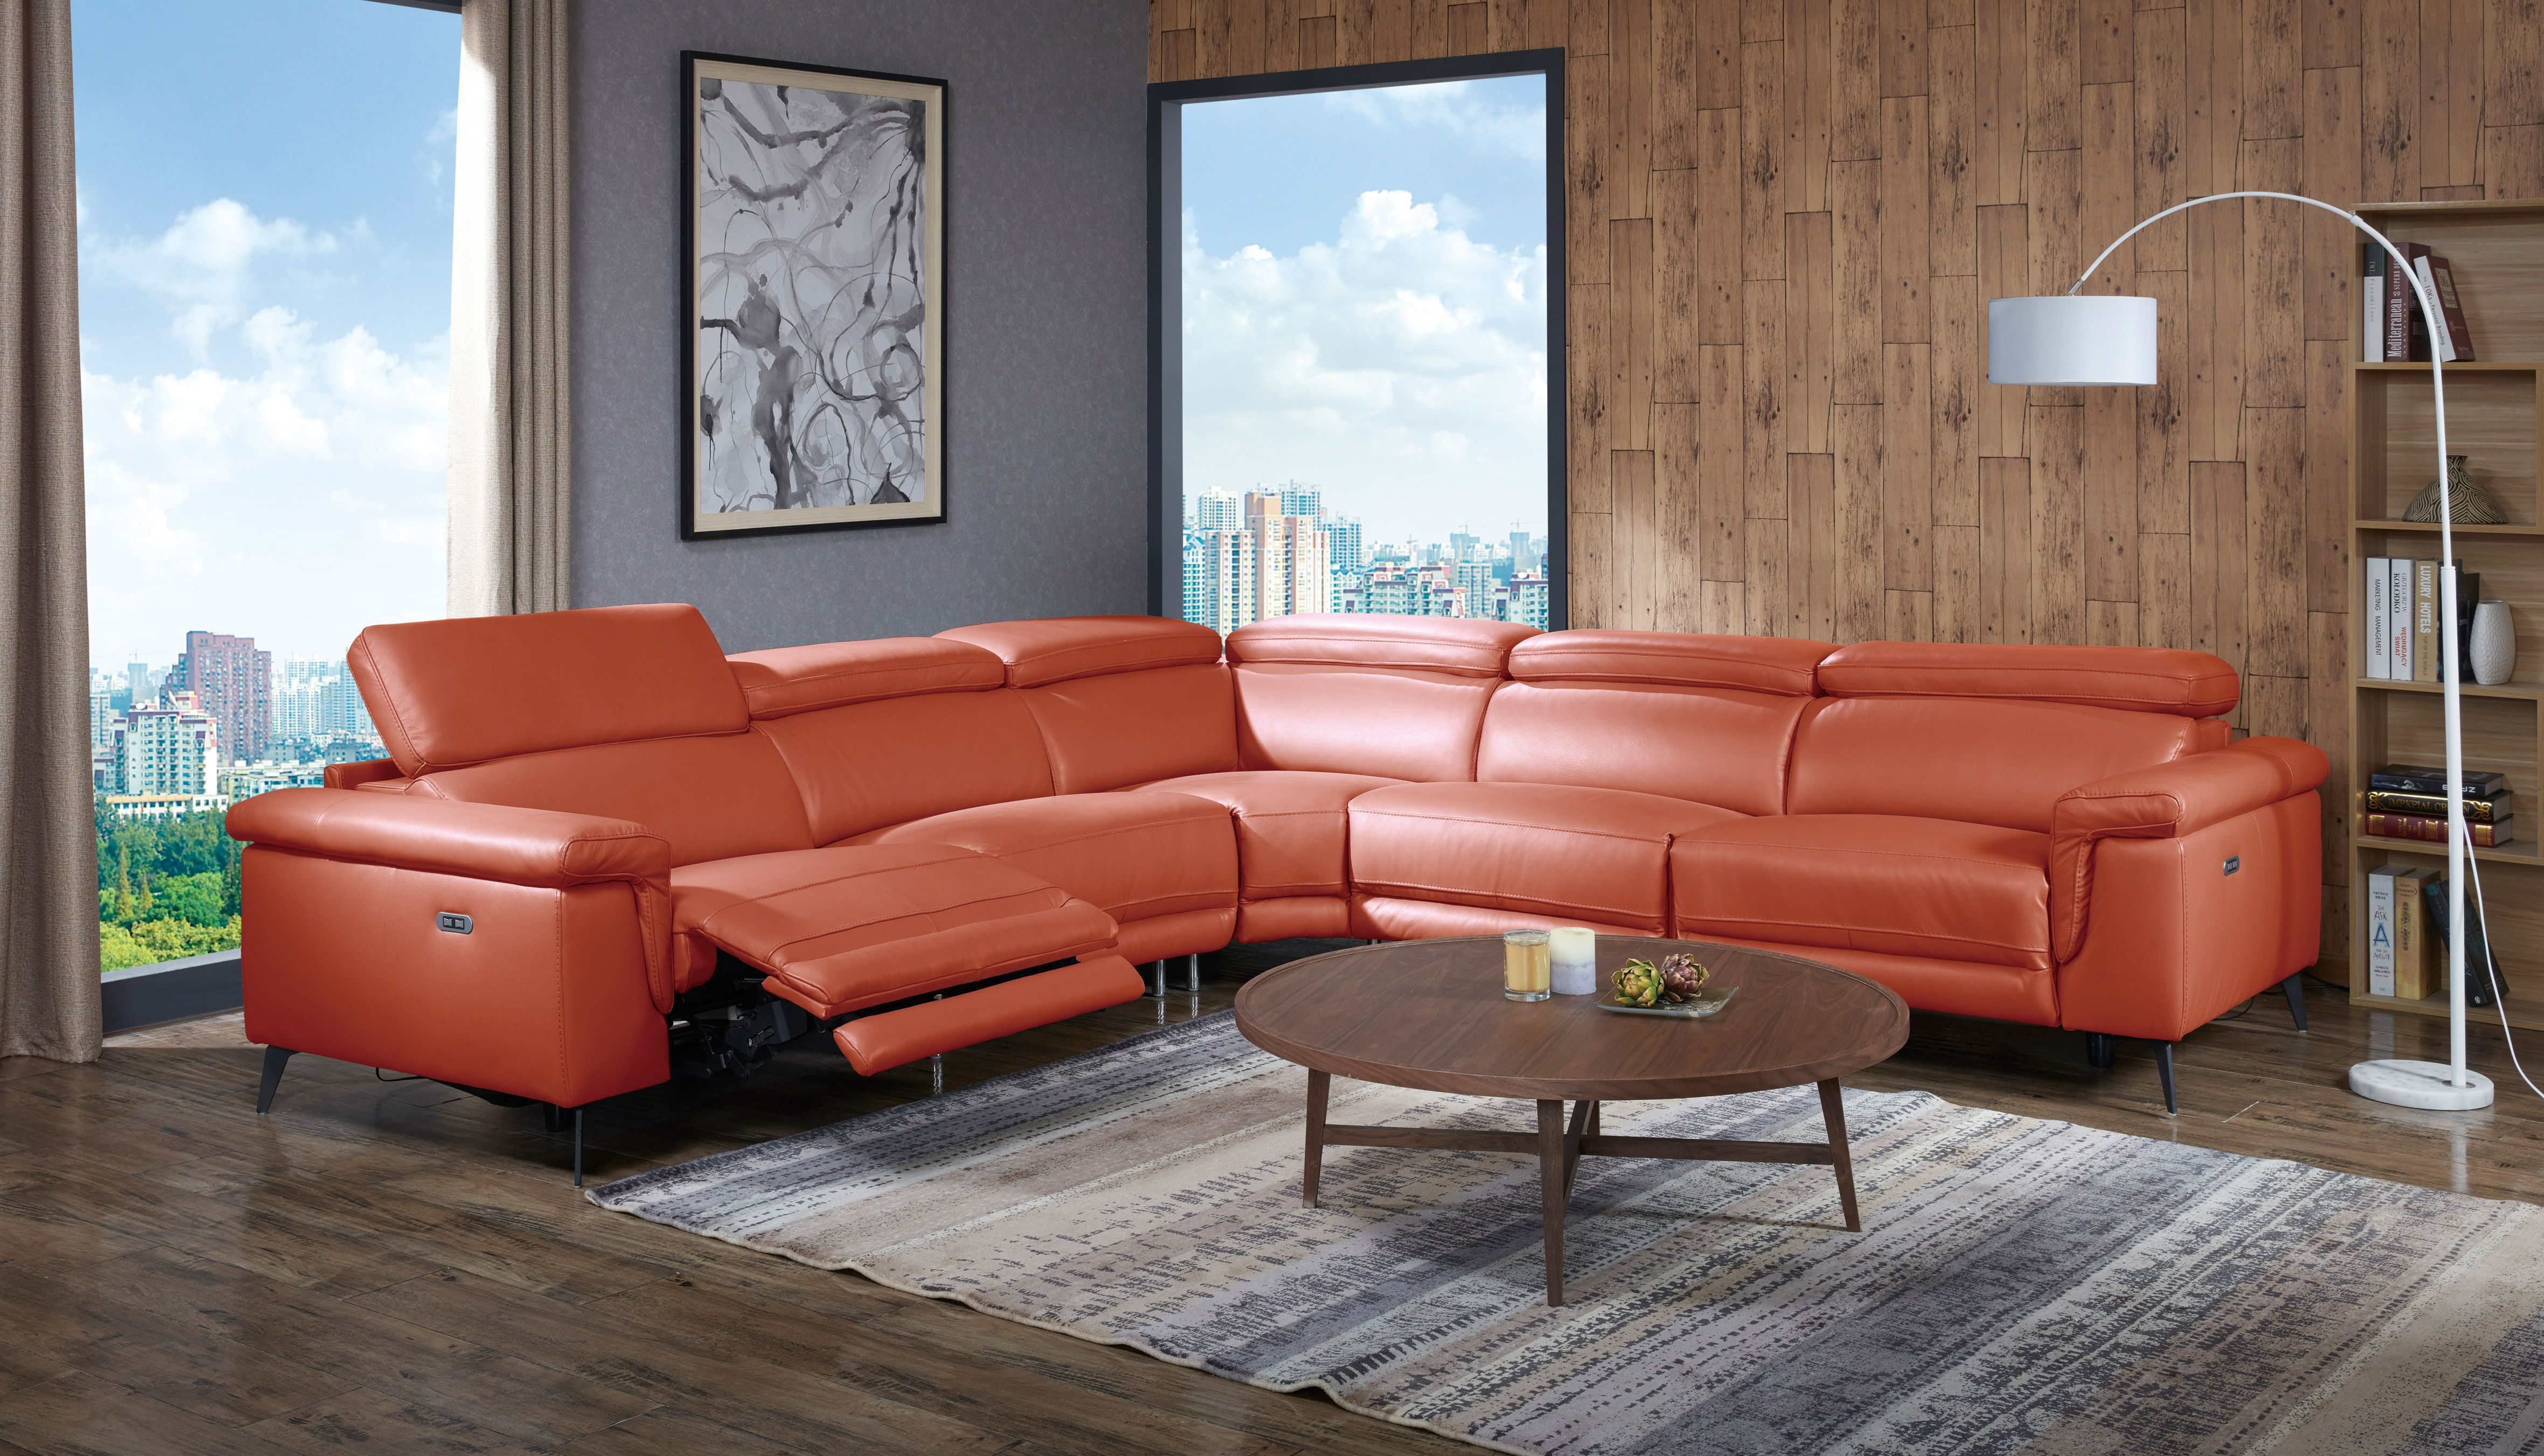 Elite Covered In Leather Sectional Reclining Sectional Sectional Sofa With Recliner Leather Reclining Sectional